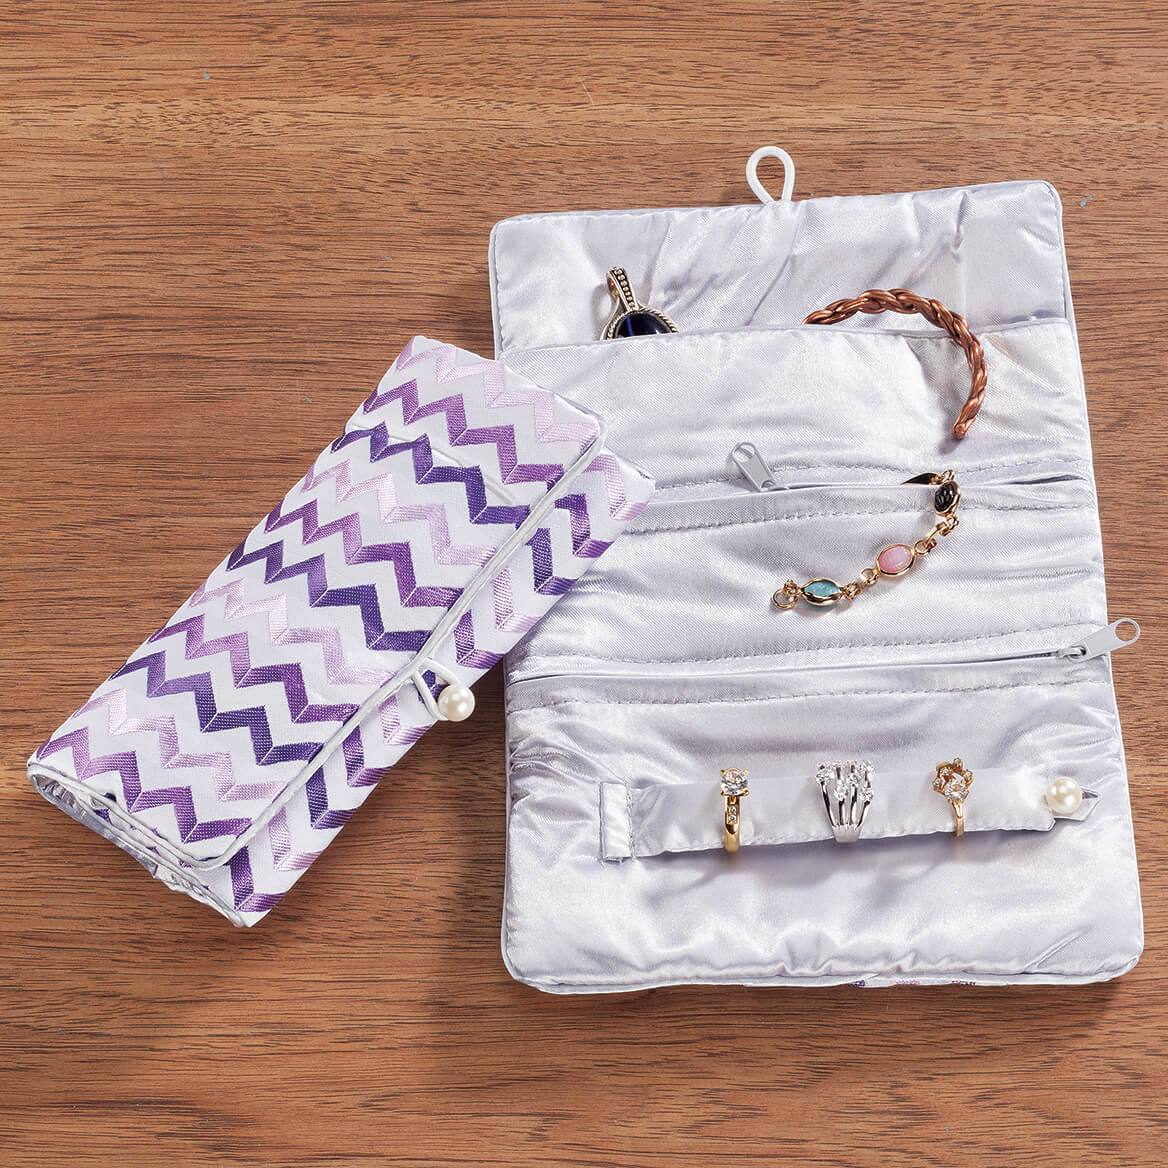 Zig Zag Purple Jewelry Roll A safe and stylish way to stash jewelry, this sateen tri-fold Zig Zag Purple Jewelry Roll keeps it organized with a fashionable chevron pattern and pearlesque button closure. Unroll the travel jewelry organizer to find a full-length compartment for necklaces and watches, 2 zip pockets to secure smaller items like bracelets and earrings, and a snap-close bar to keep rings safely organized. Perfect for home and travel! Jewelry roll measures 9 1/2  x 6 1/2  when opened, 6 1/2  x 3 1/2  rolled. A great value -- compare at $9.99-$14.99!